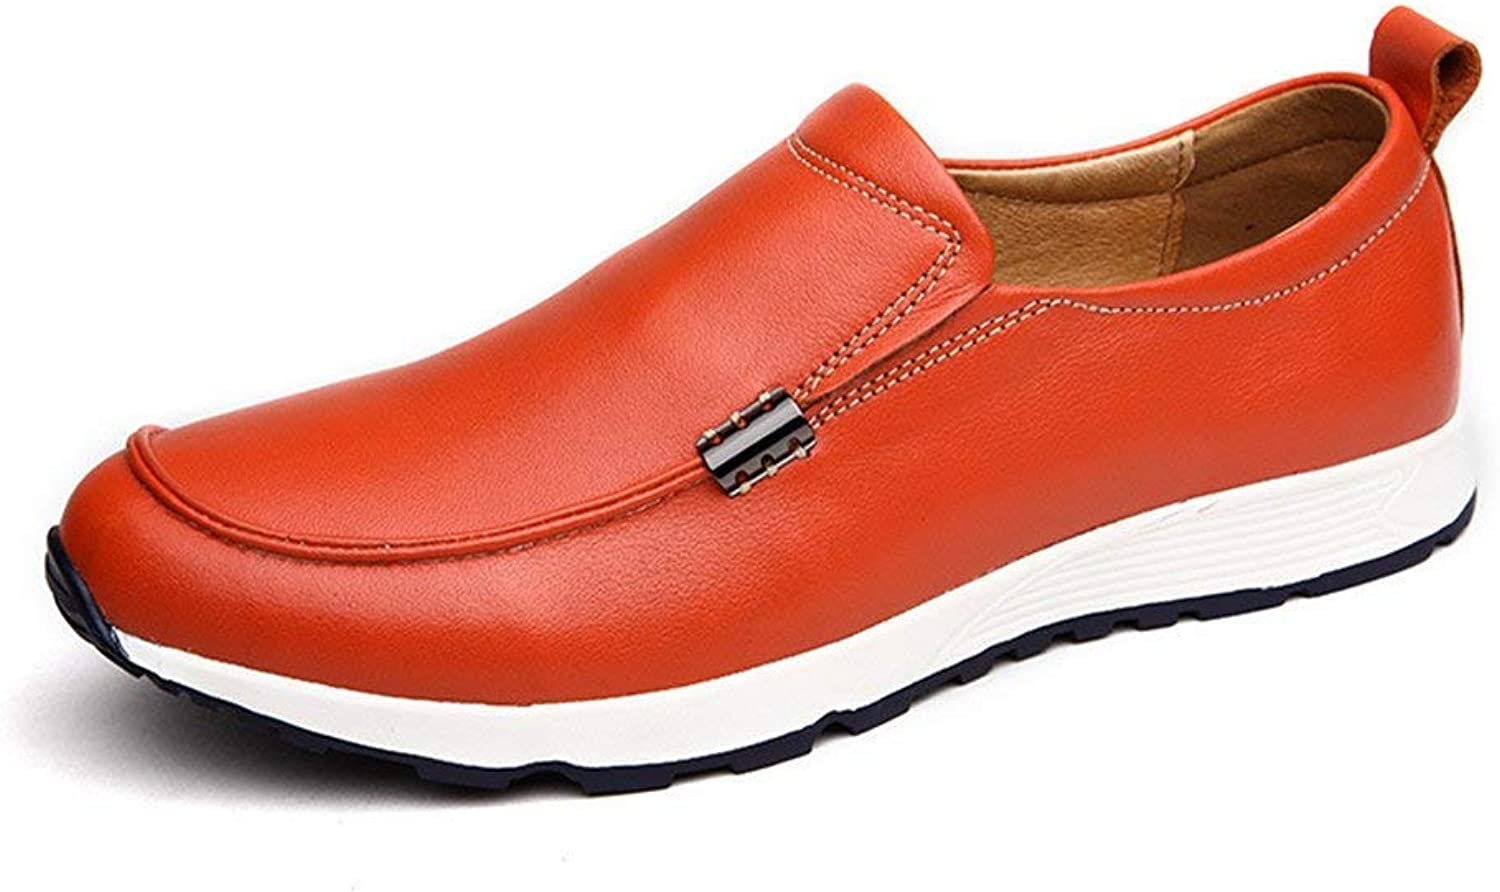 FuweiEncore Men's Moccasins shoes, Men Driving Penny Loafers Bare Vamp Slip-on Casual Boot Moccasins Soft Rubber Sole Leather Lined shoes (color  Brown, Size  41 EU) (color   orange, Size   40 EU)